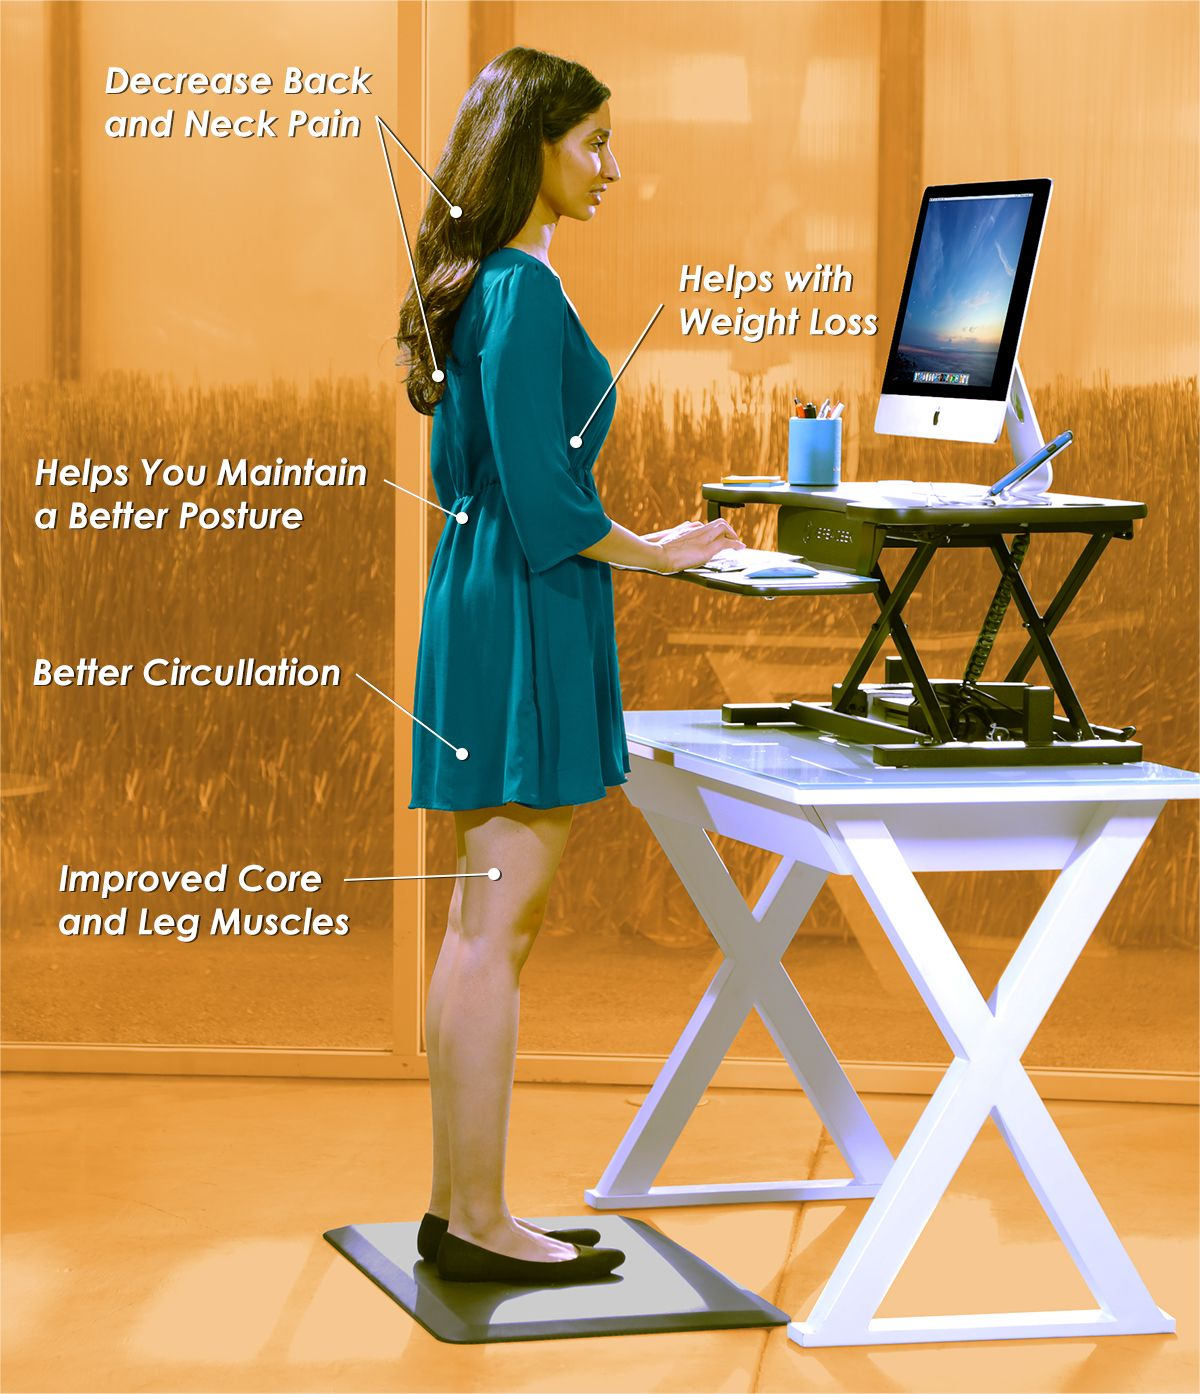 Decrease Back and Neck Pain - Helps with Weight Loss - Helps You Maintain a Better Posture - Better Circulation - Improved Core and Leg Muscles